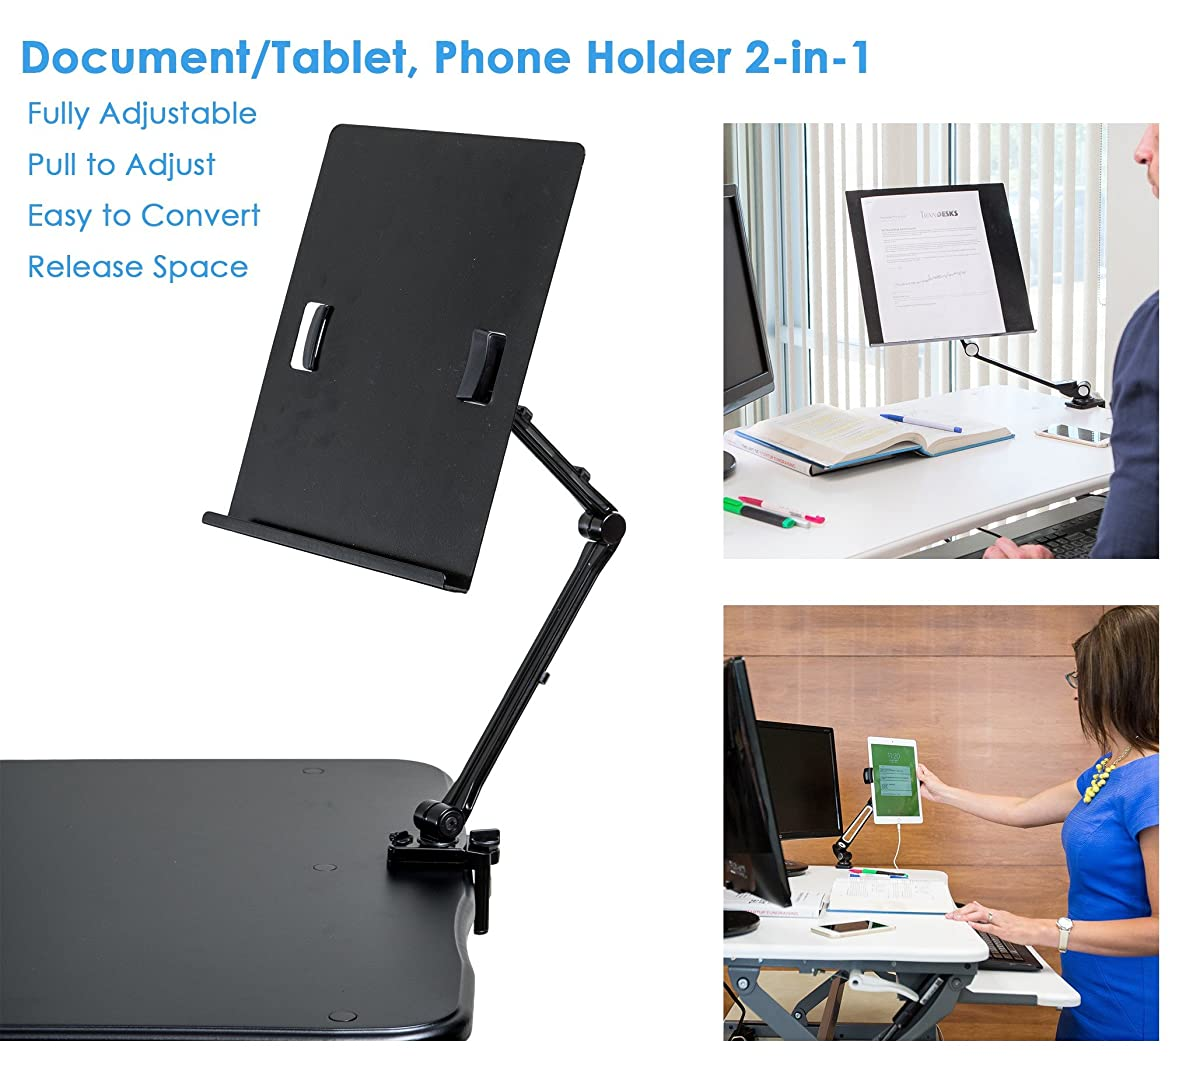 TrenDesks Document Copy Holder and Tablet/Cellphone Holder 2-in-1 (Black), Full Motion, Pull to Adjust Height, Angle and Direction